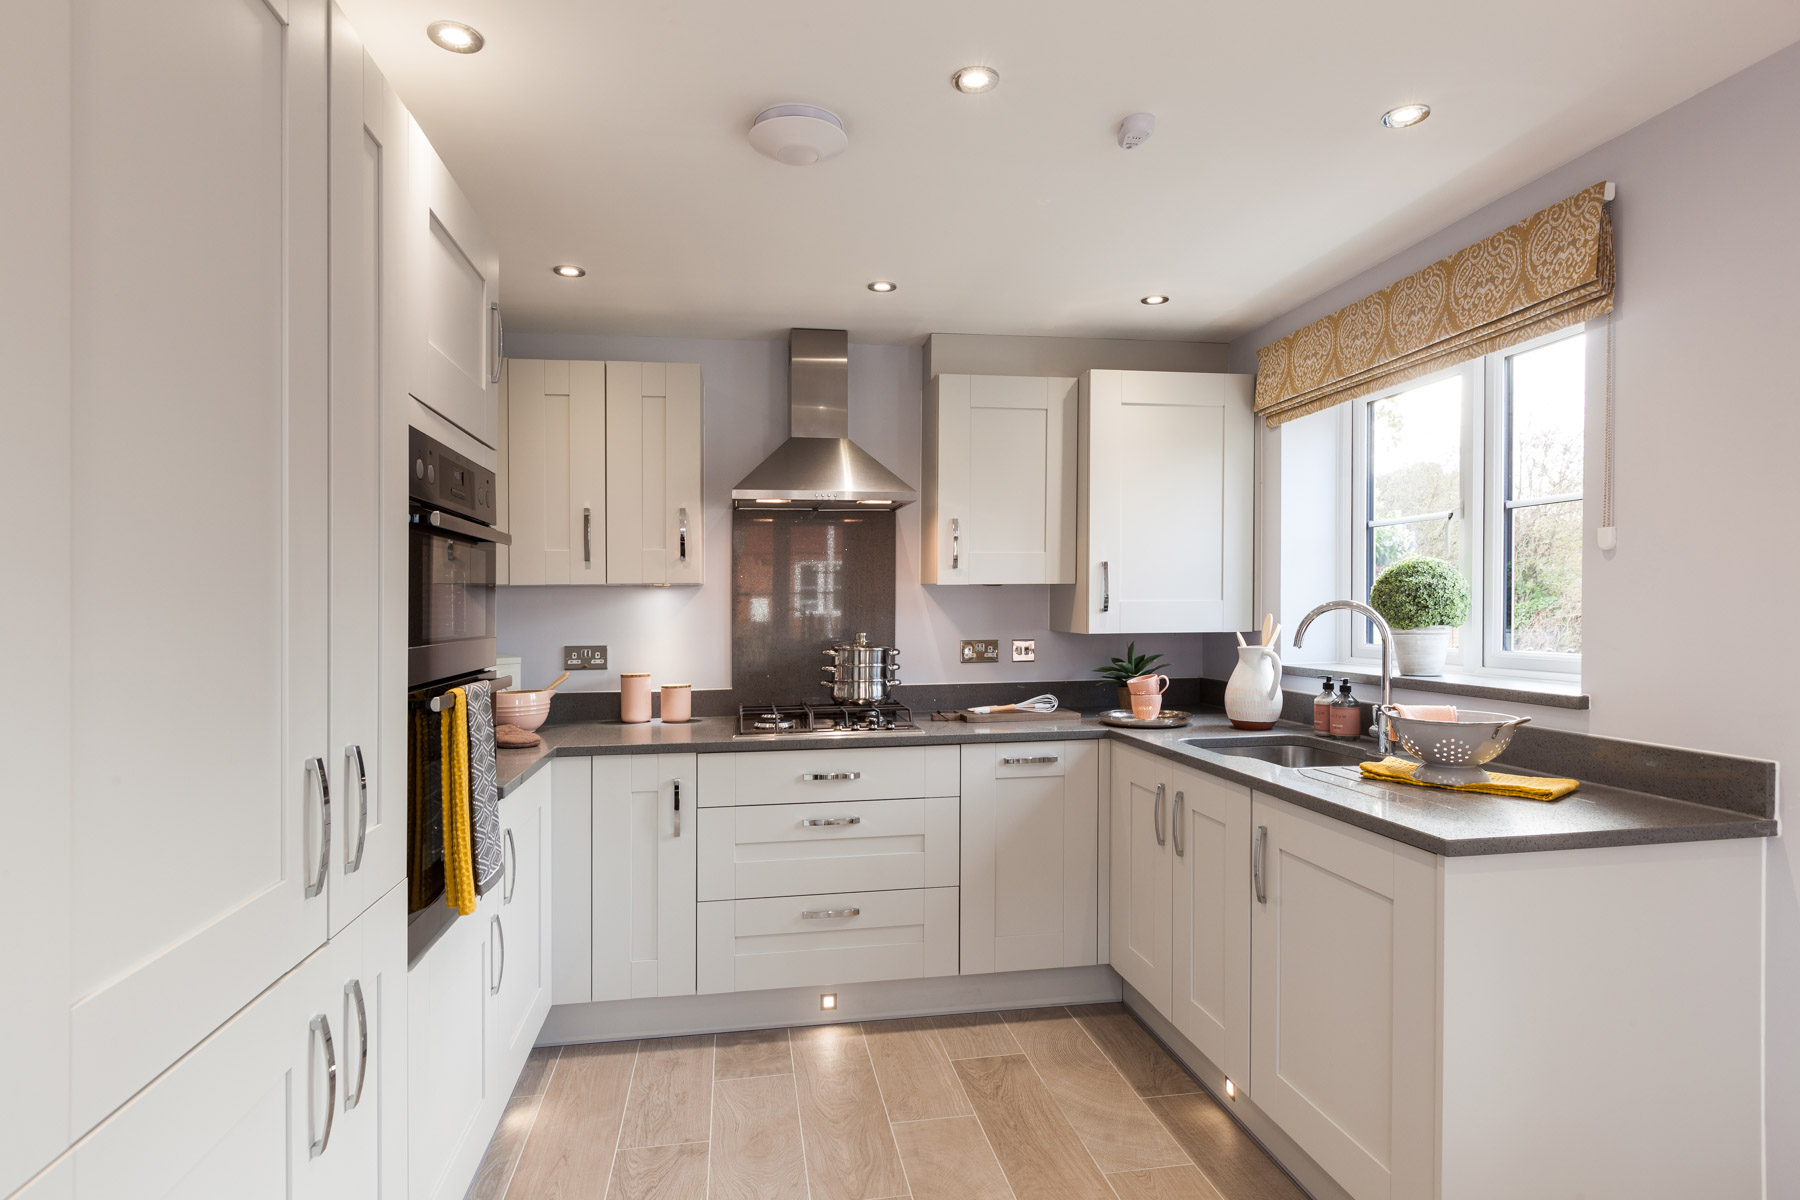 TW Exeter - Mayfield Gardens - Kingdale example kitchen